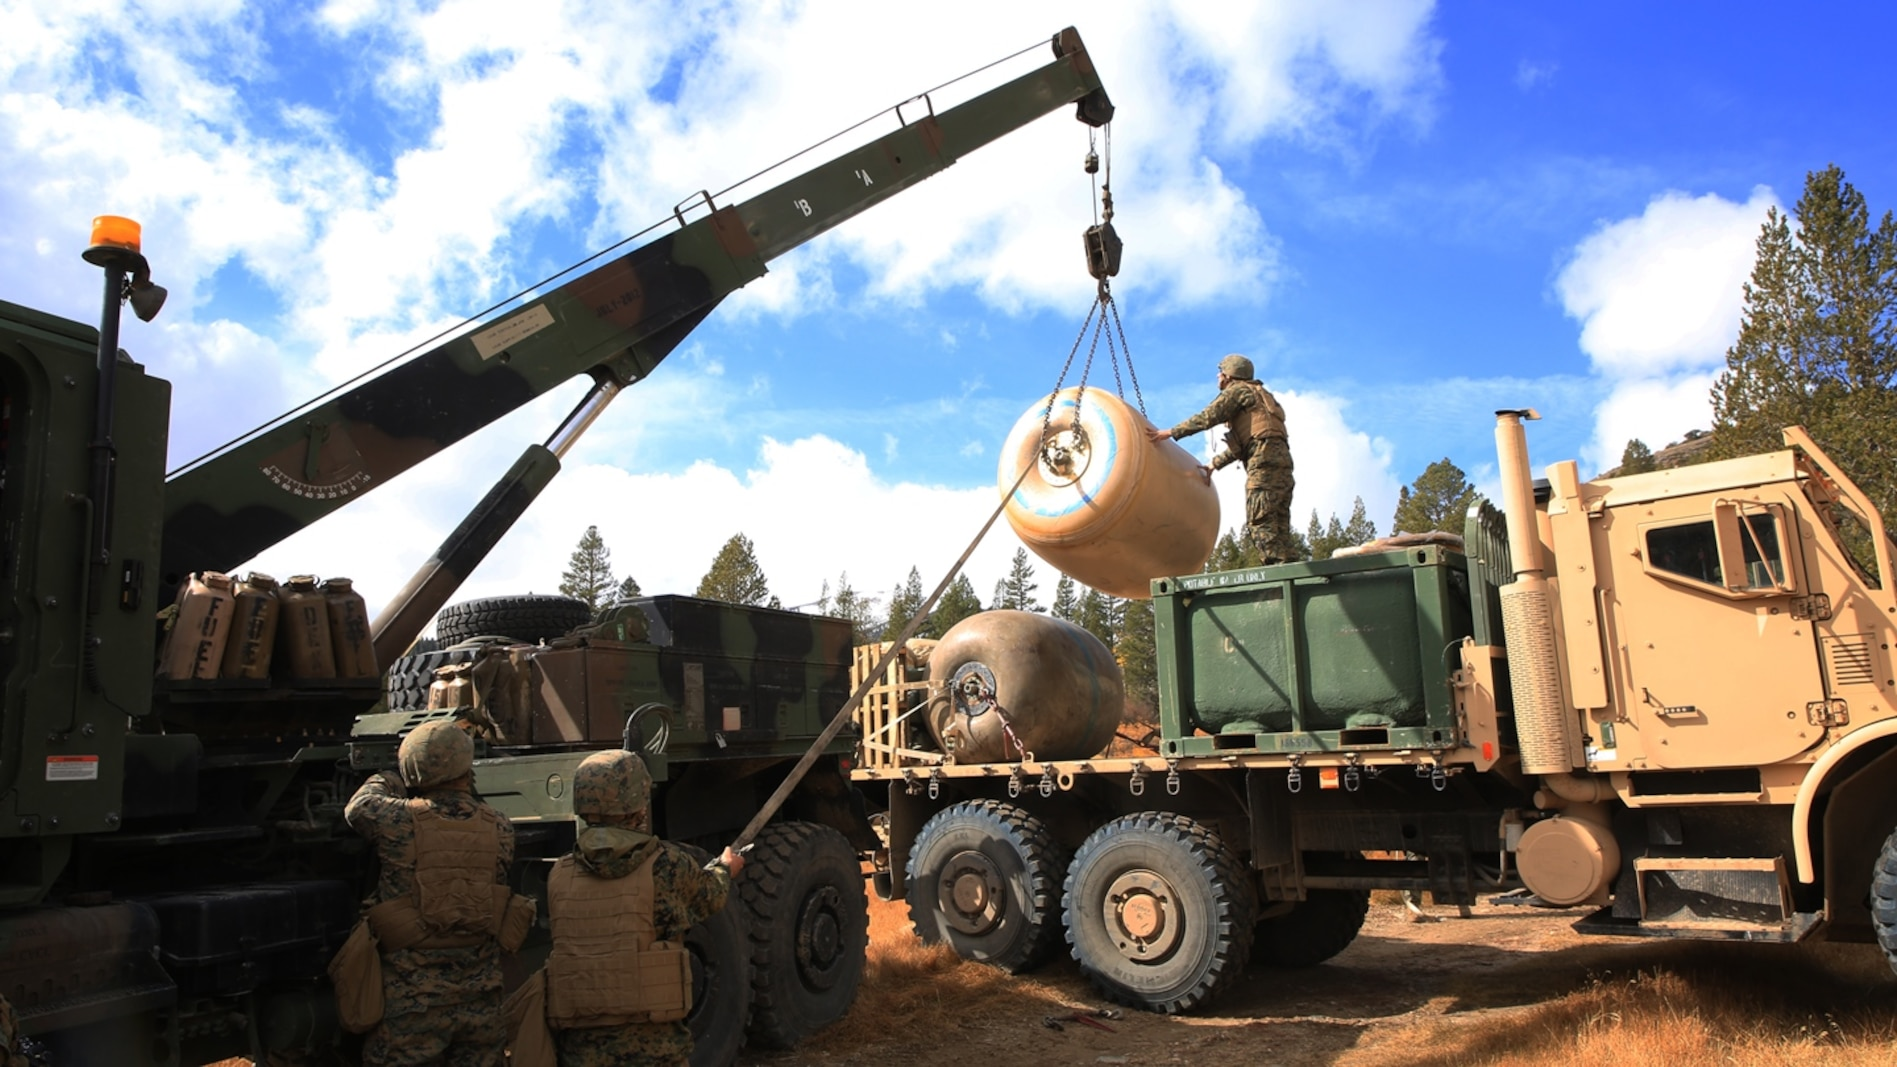 U.S. Marines with Combat Logistics Battalion 15, 1st Marine Logistics Group, load a 500-gallon drum of water on to the back of a Medium Tactical Vehicle Replacement at Mountain Warfare Training Center, Bridgeport, Calif., Oct. 23, 2016. The full drum weighs over 4,000 pounds and was airlifted into the area of operation to support Marine ground units by a CH-53E Super Stallion with Marine Heavy Helicopter Squadron 466. (U.S. Marine Corps photo by Lance Cpl. Austin Mealy)